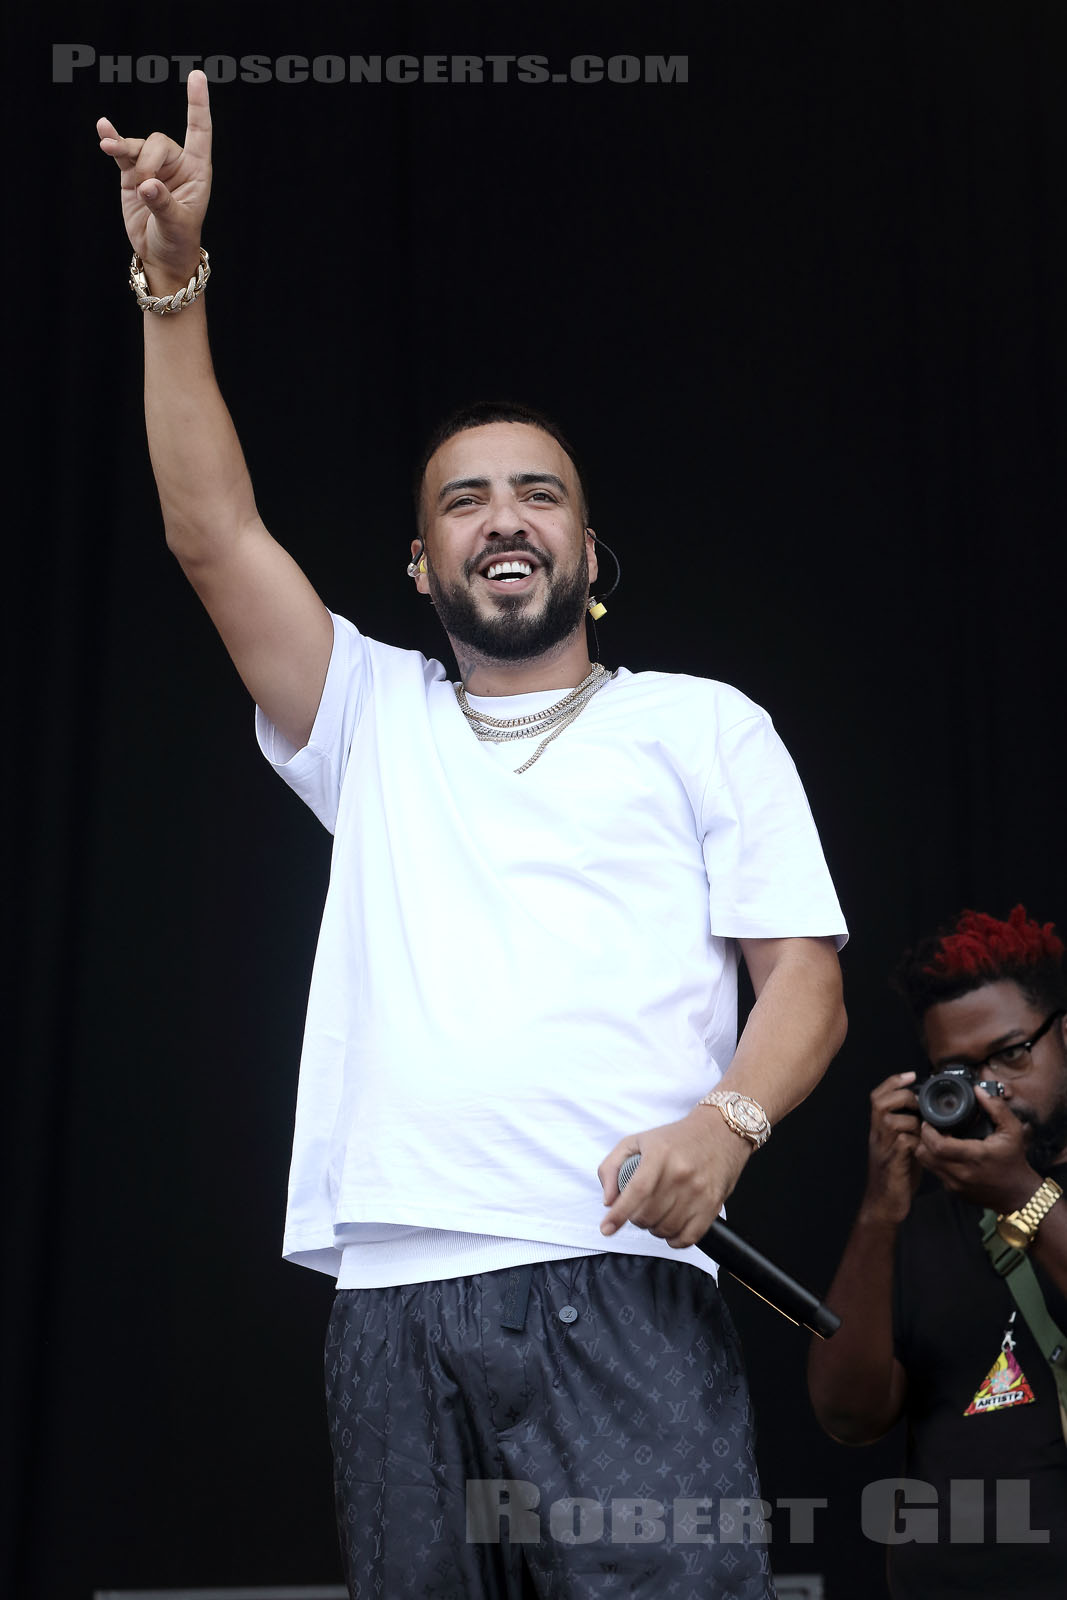 FRENCH MONTANA - 2018-07-22 - PARIS - Hippodrome de Longchamp - Main Stage 1